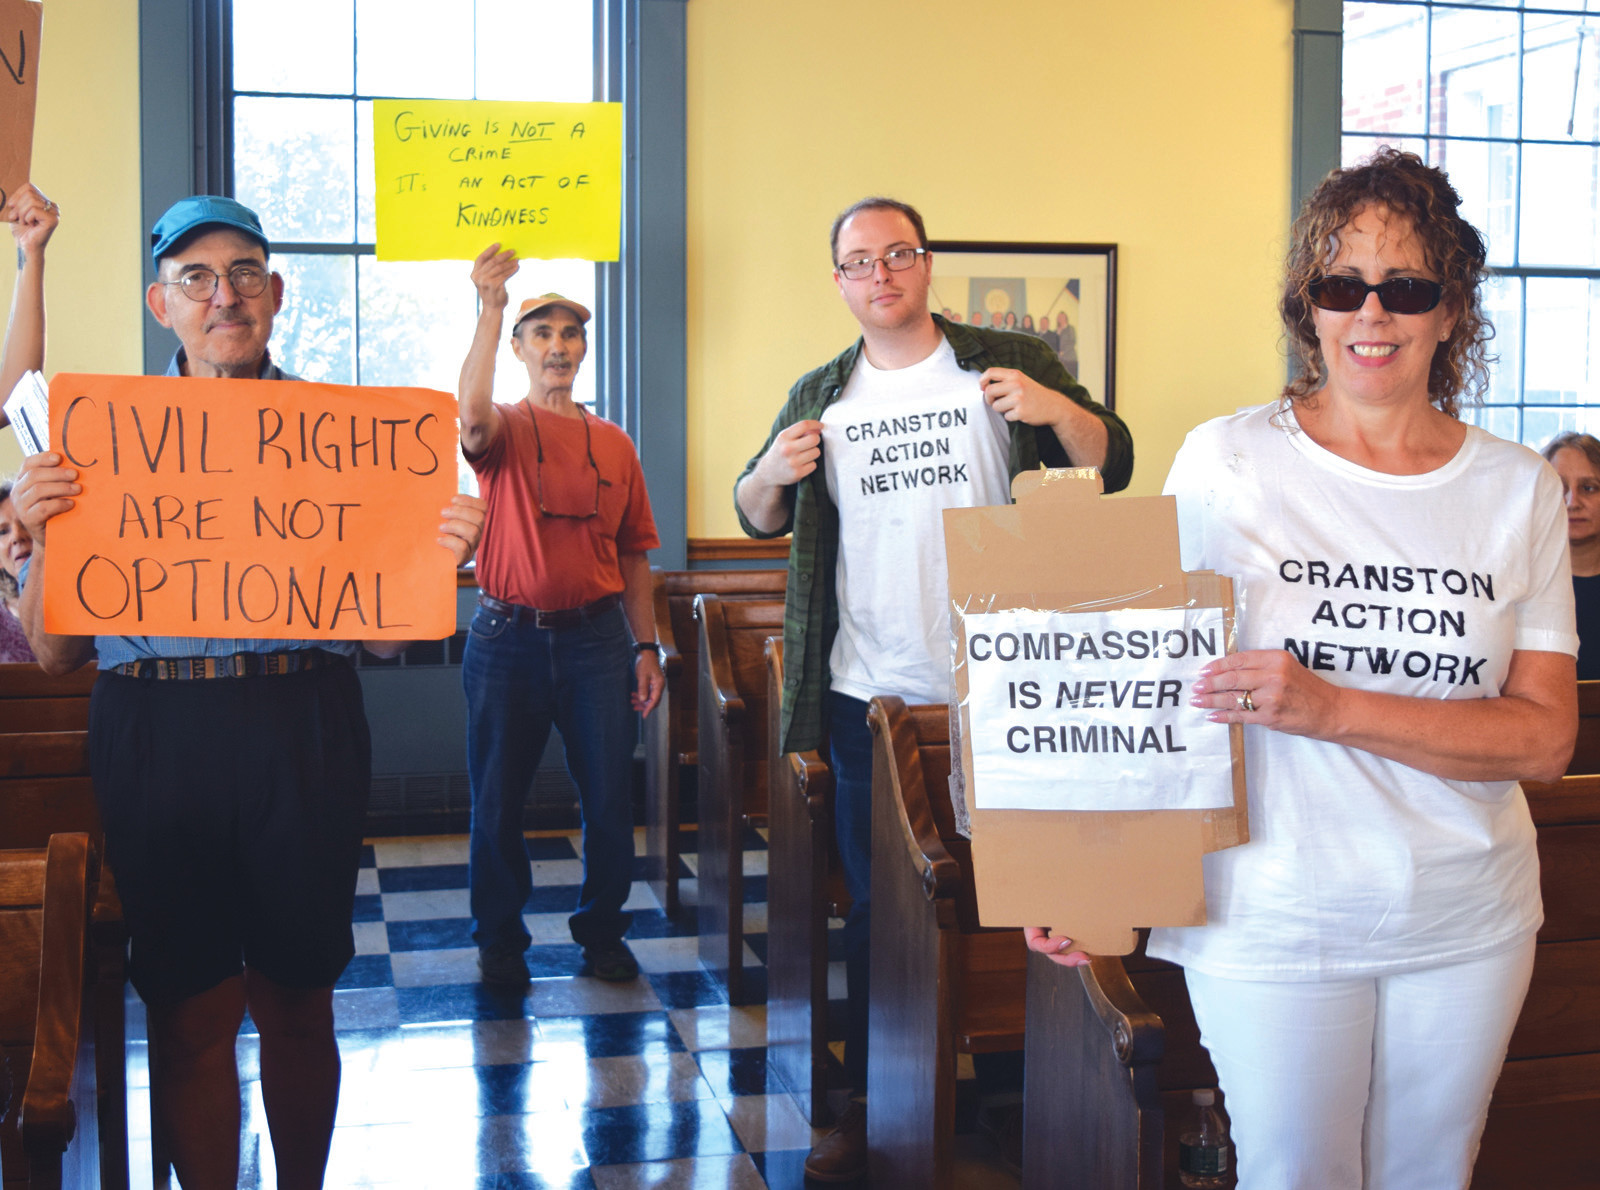 TAKING ACTION: John Donegan, in the middle holding up his shirt, and members of the Cranston Action Network took over the chambers on Thursday as the City Council went into executive session.